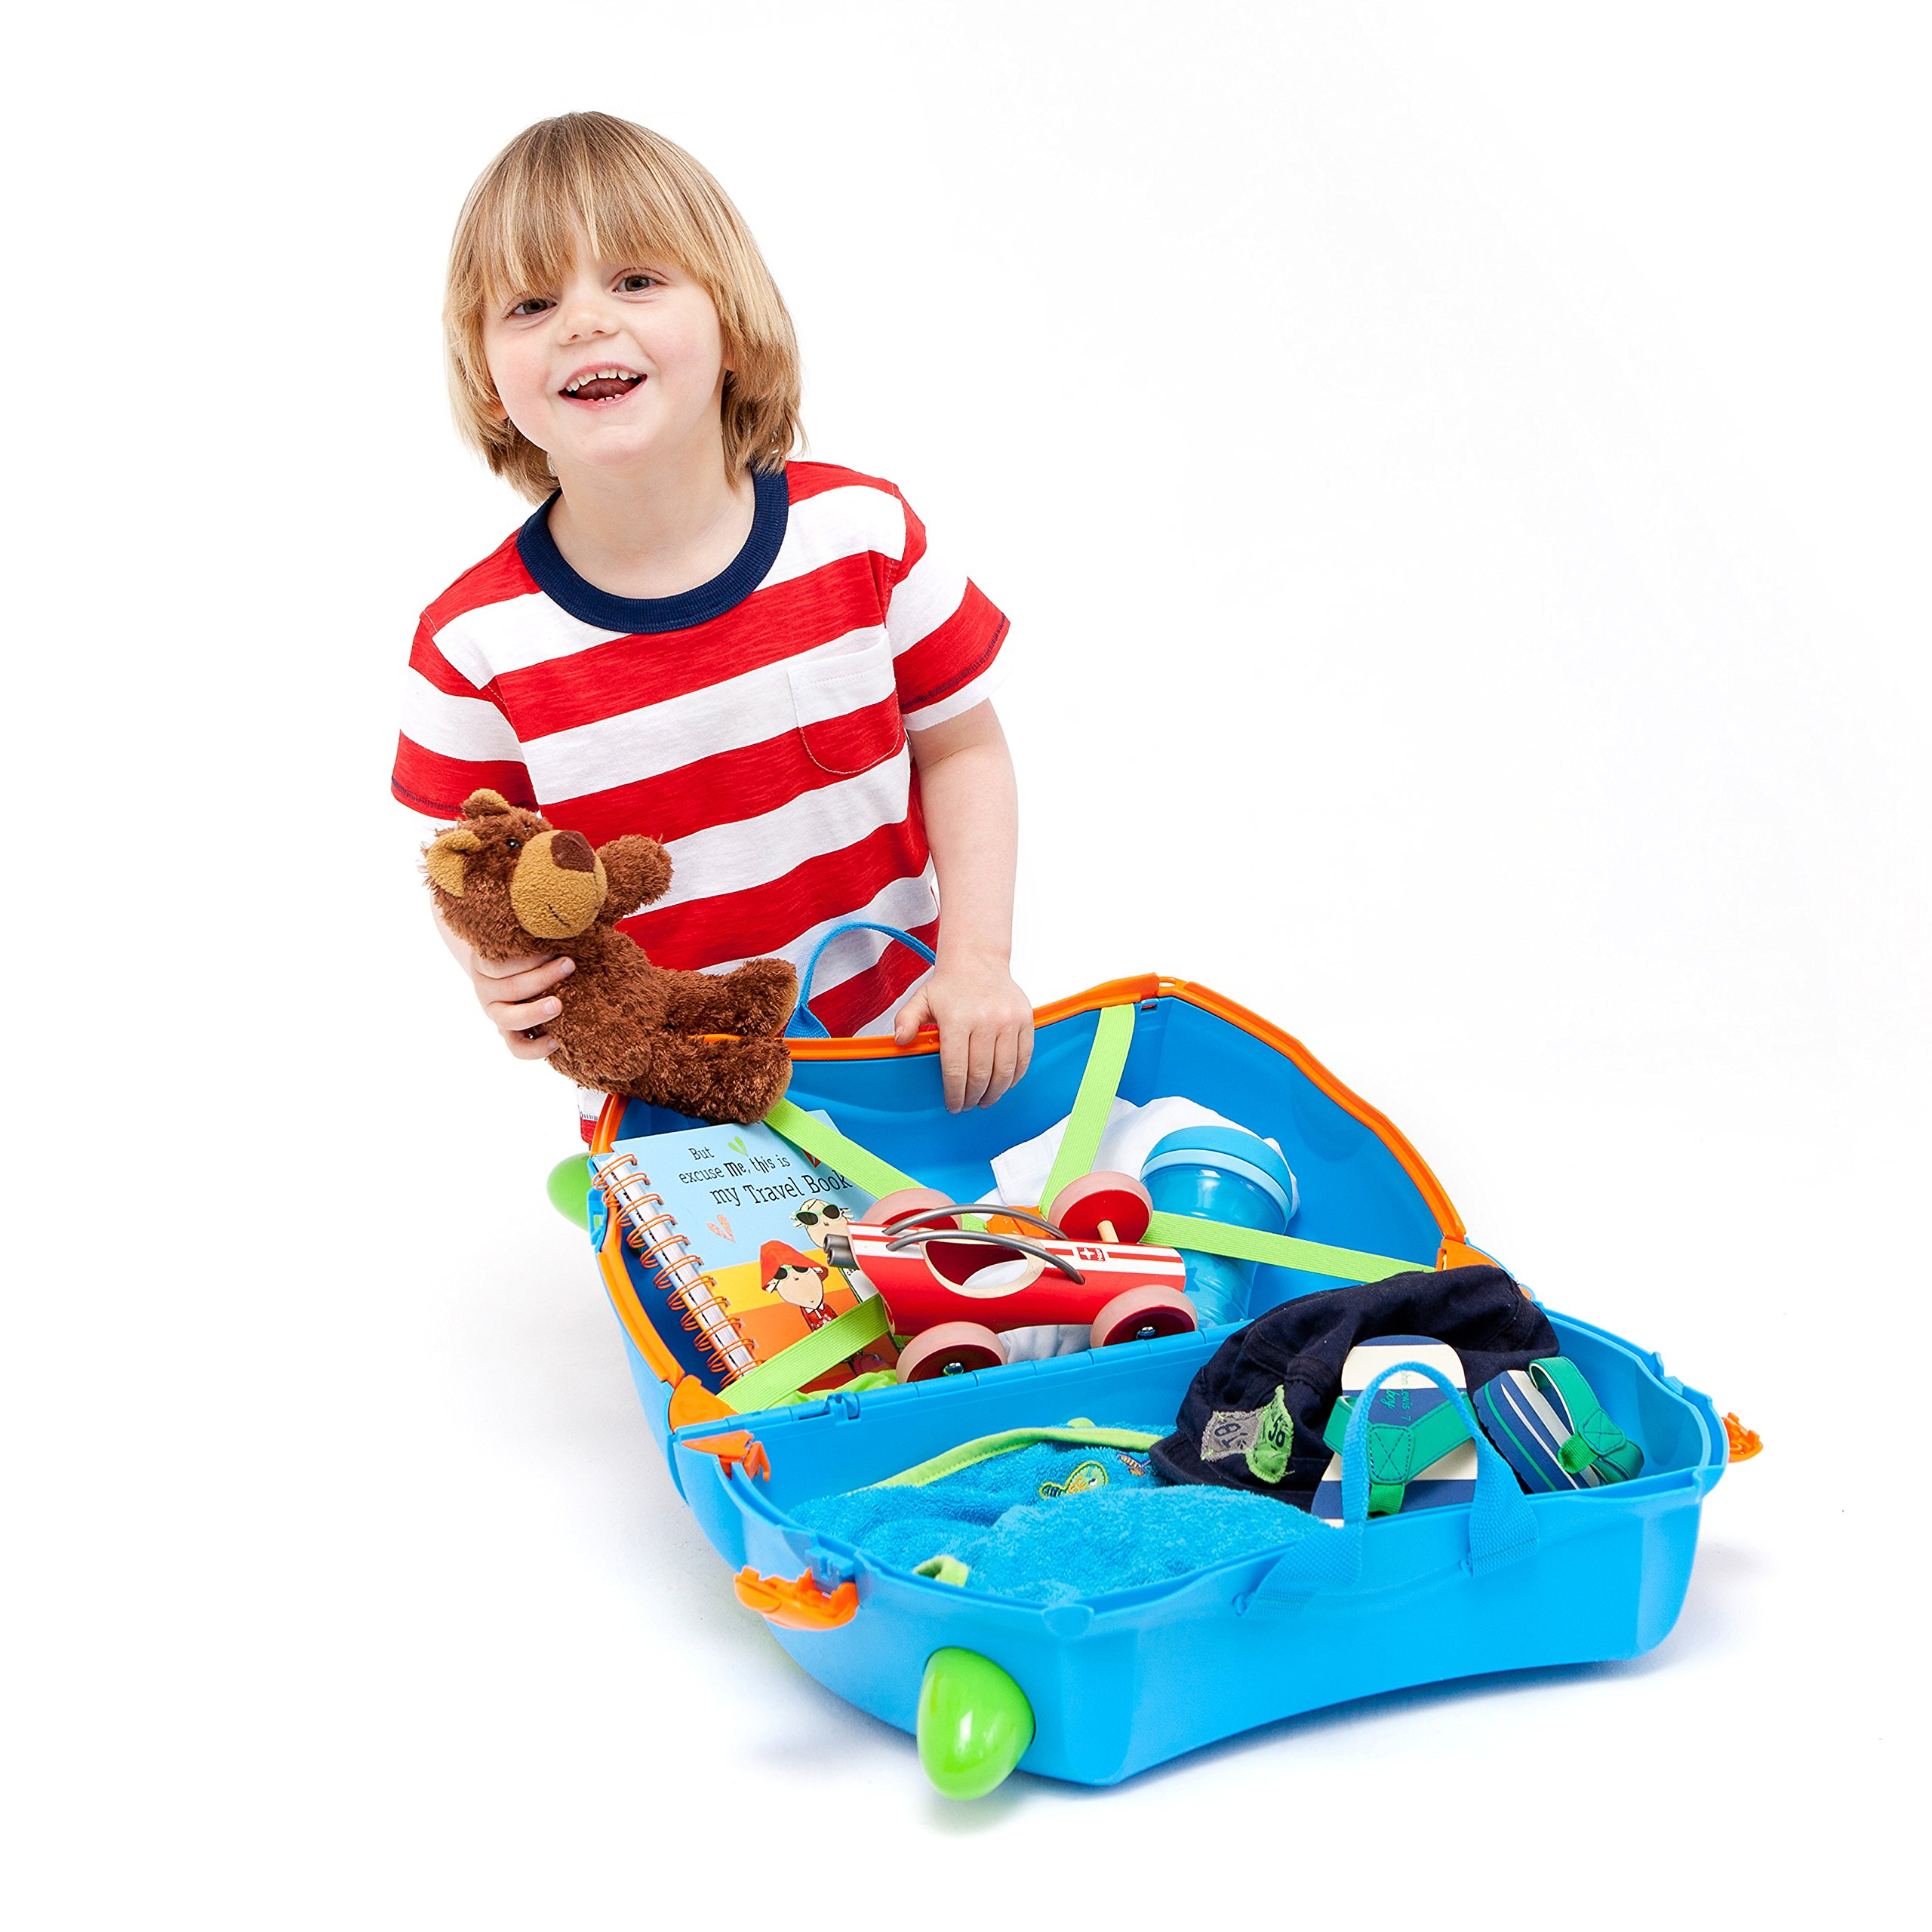 Trunki Original Kids Ride-On Suitcase and Carry-On Luggage - Terrance (Blue) by Trunki (Image #5)